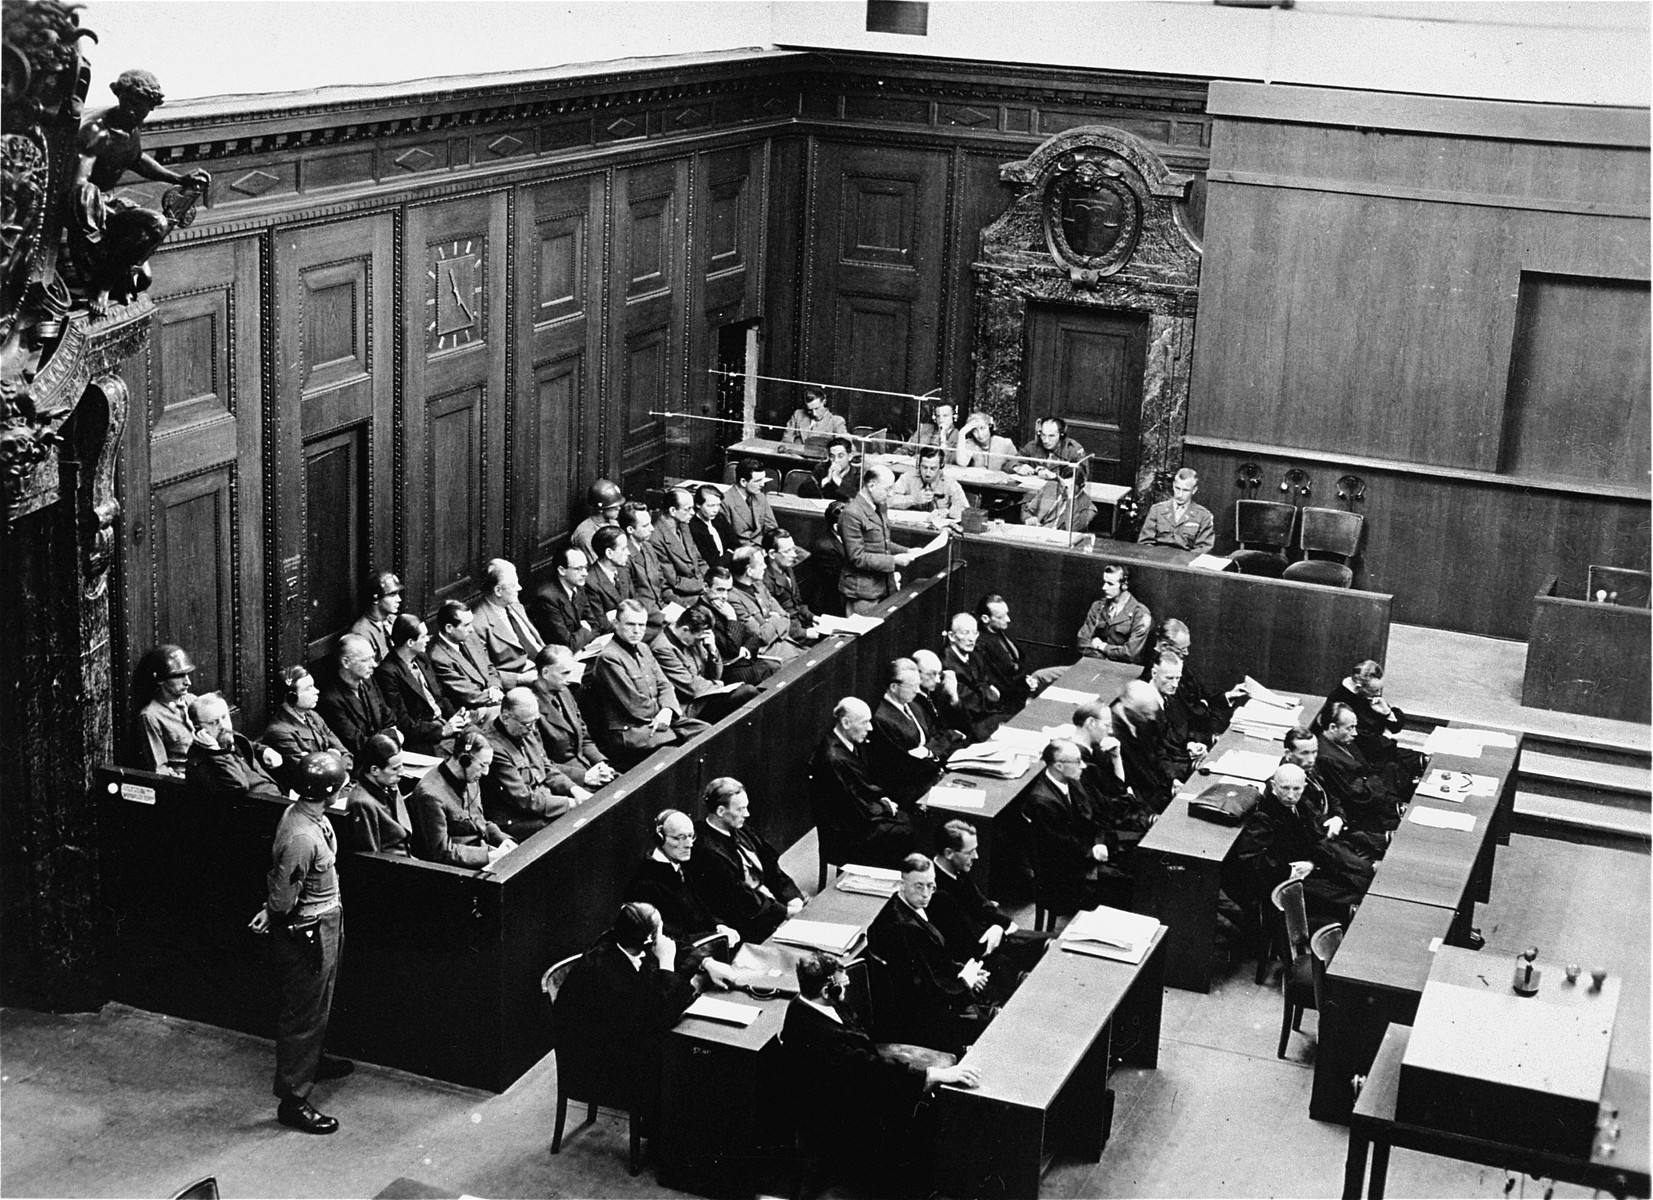 The defendants in the dock (left) and their lawyers (right) at the Doctors Trial.